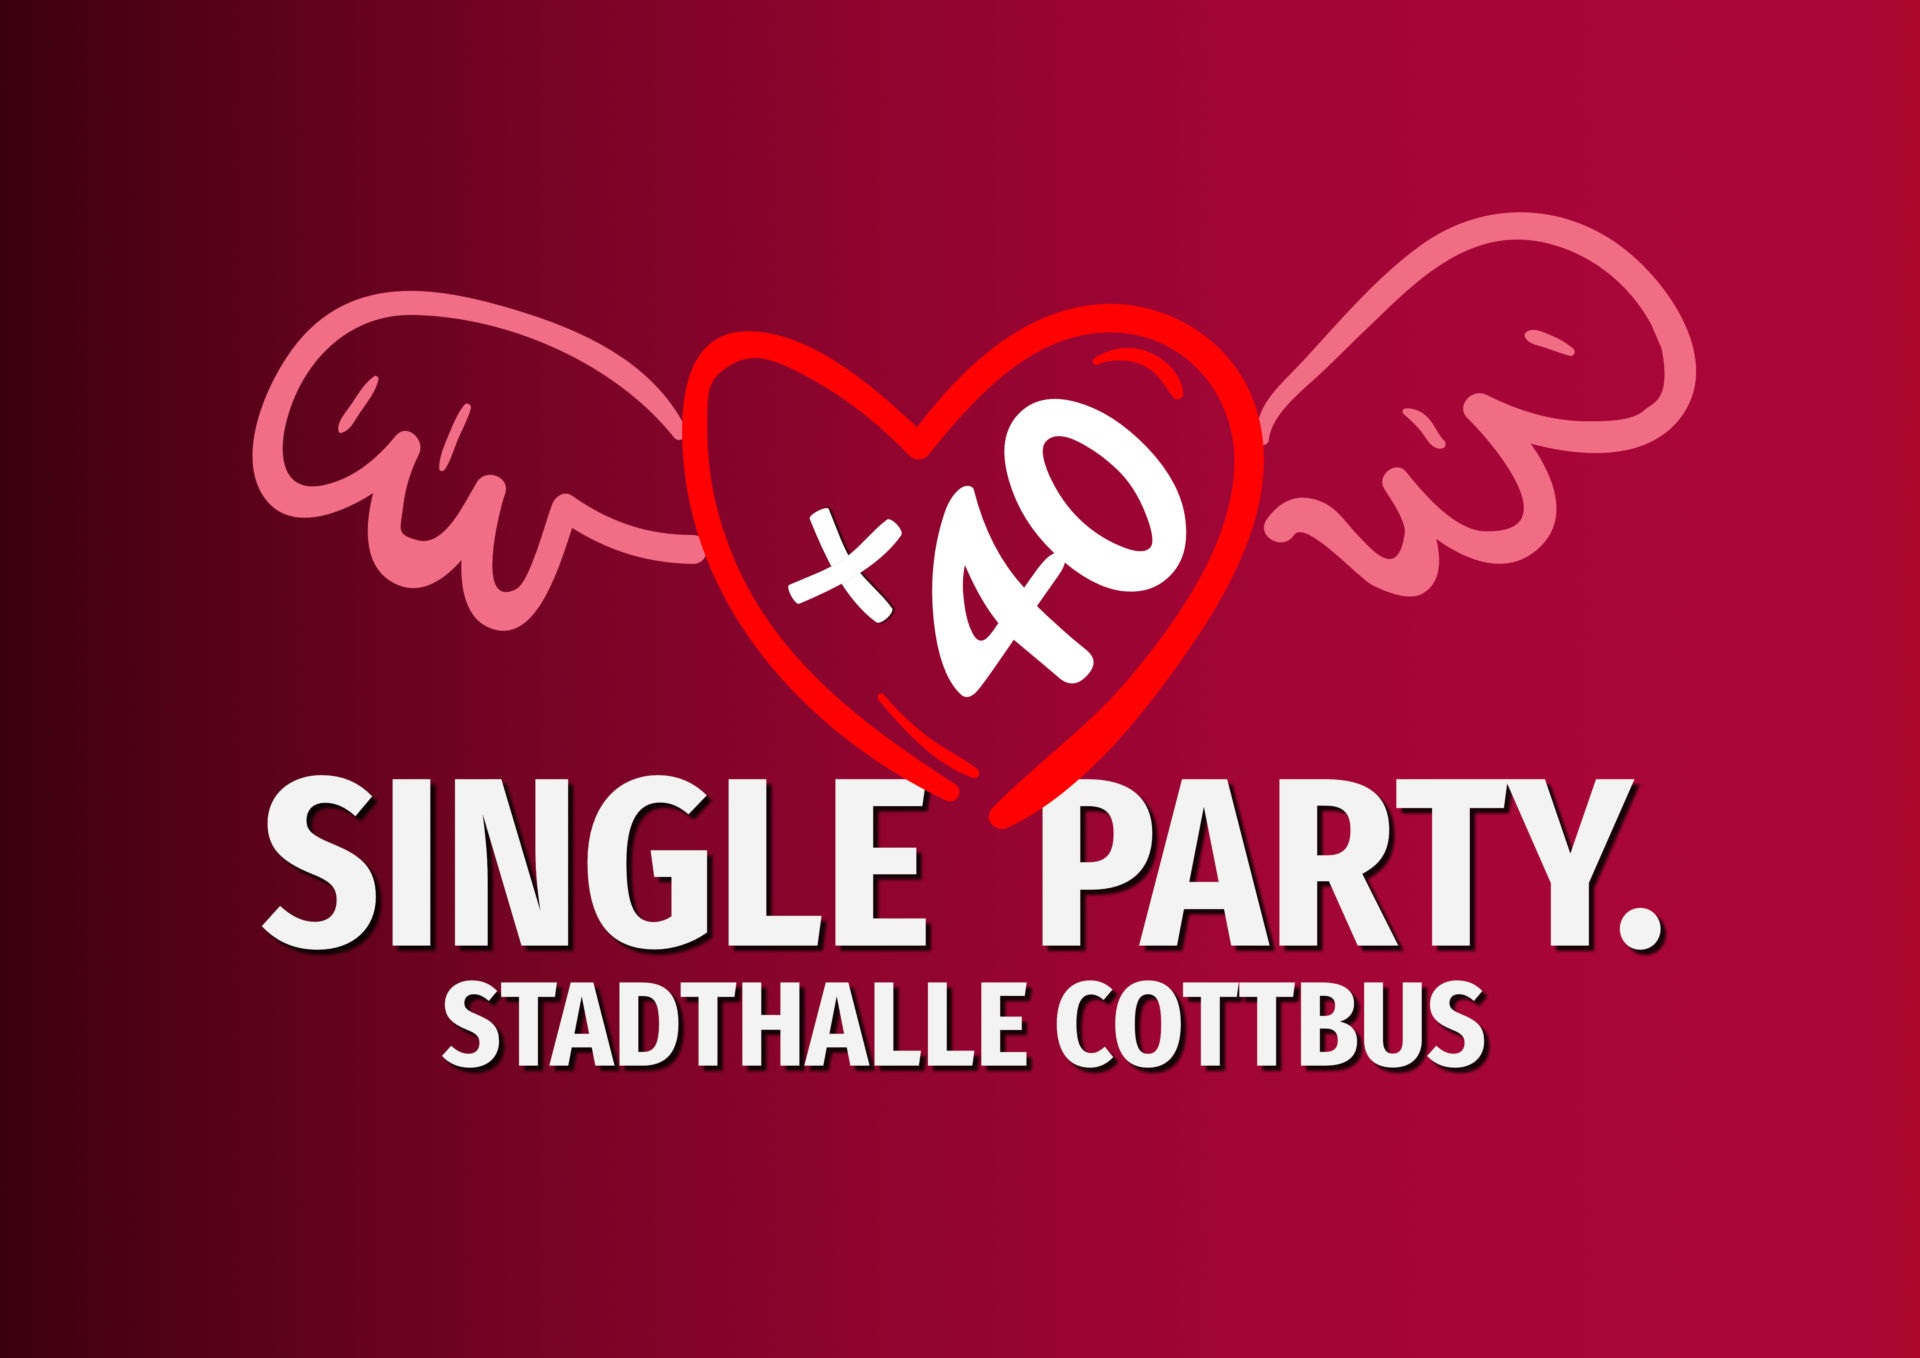 Cottbus single party